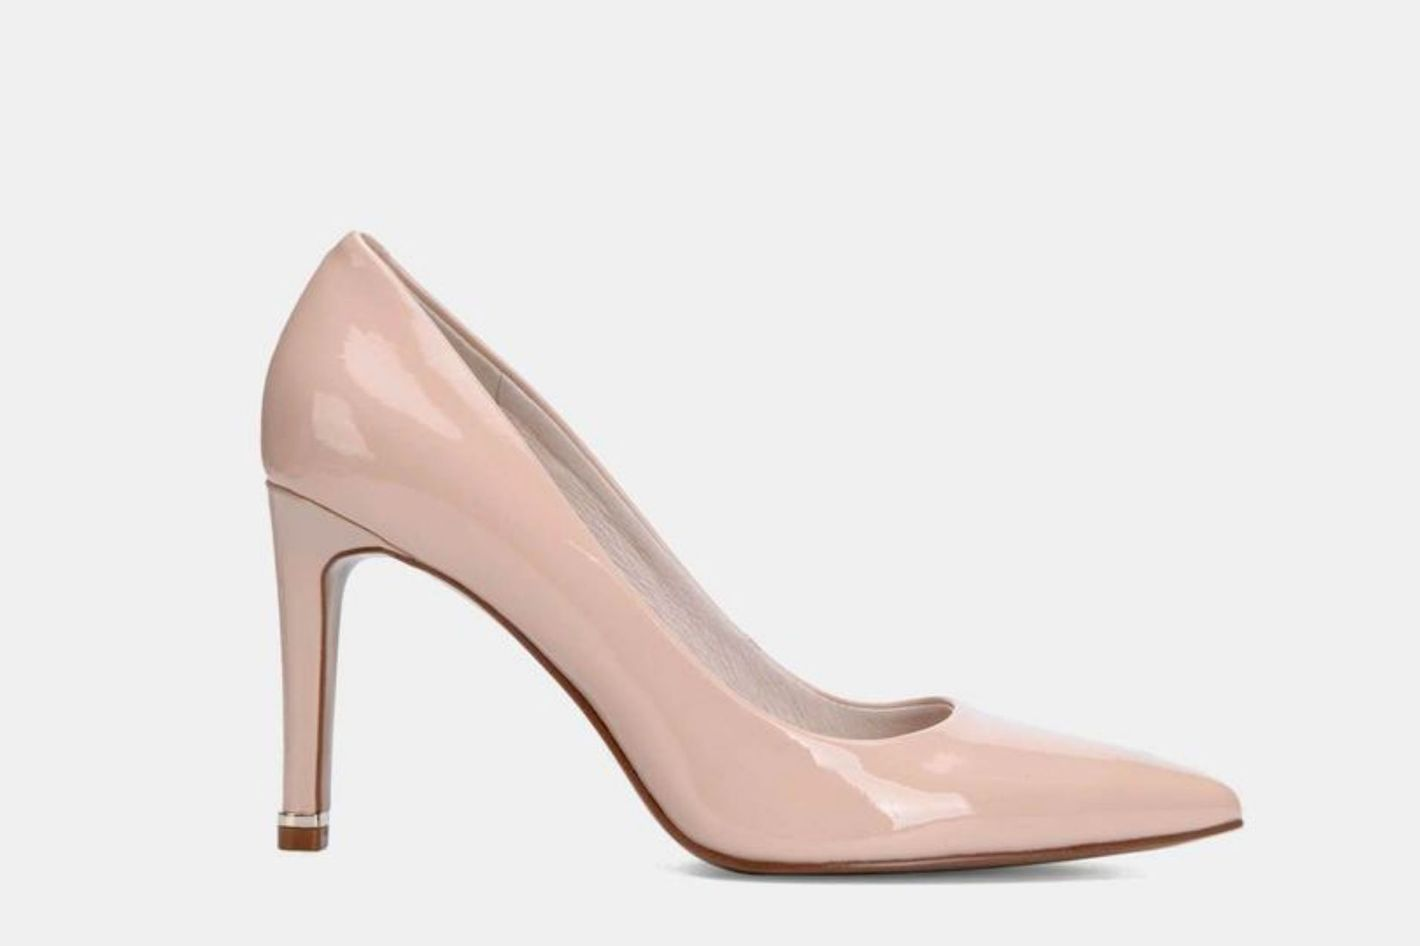 Riley 85 Patent Leather Pump